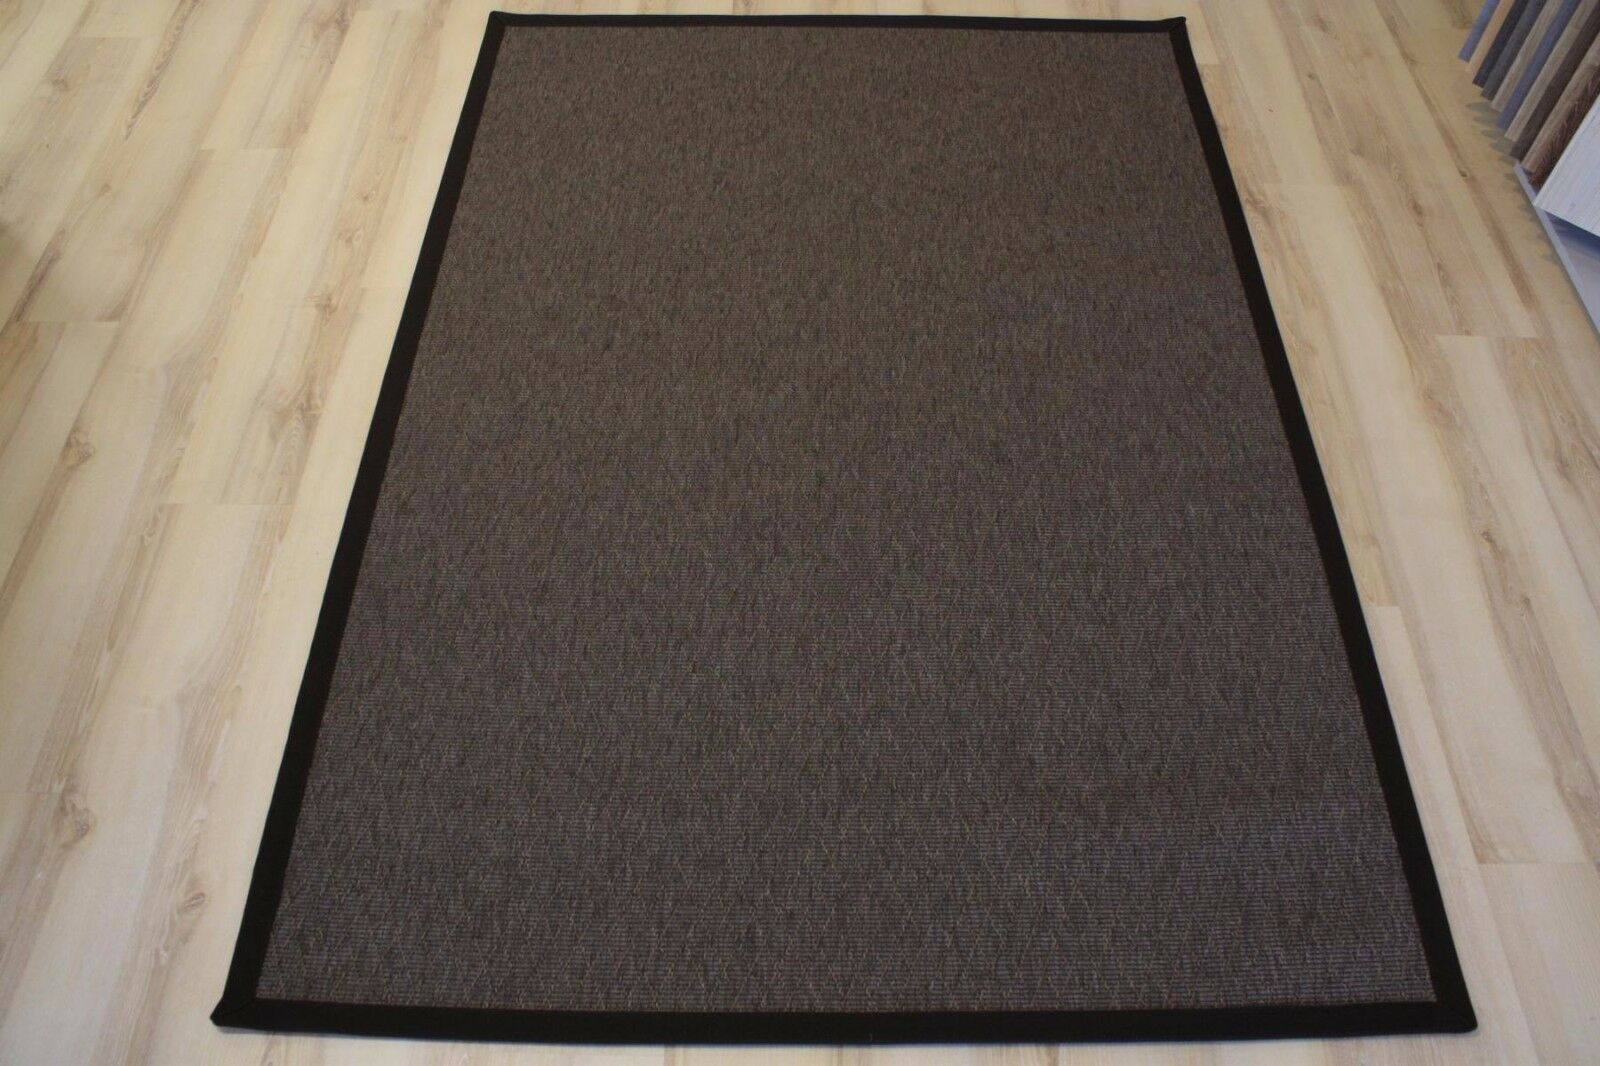 ASTRA tapis griefs passementeries tapis losange 171 064 marron foncé 165x235 CM